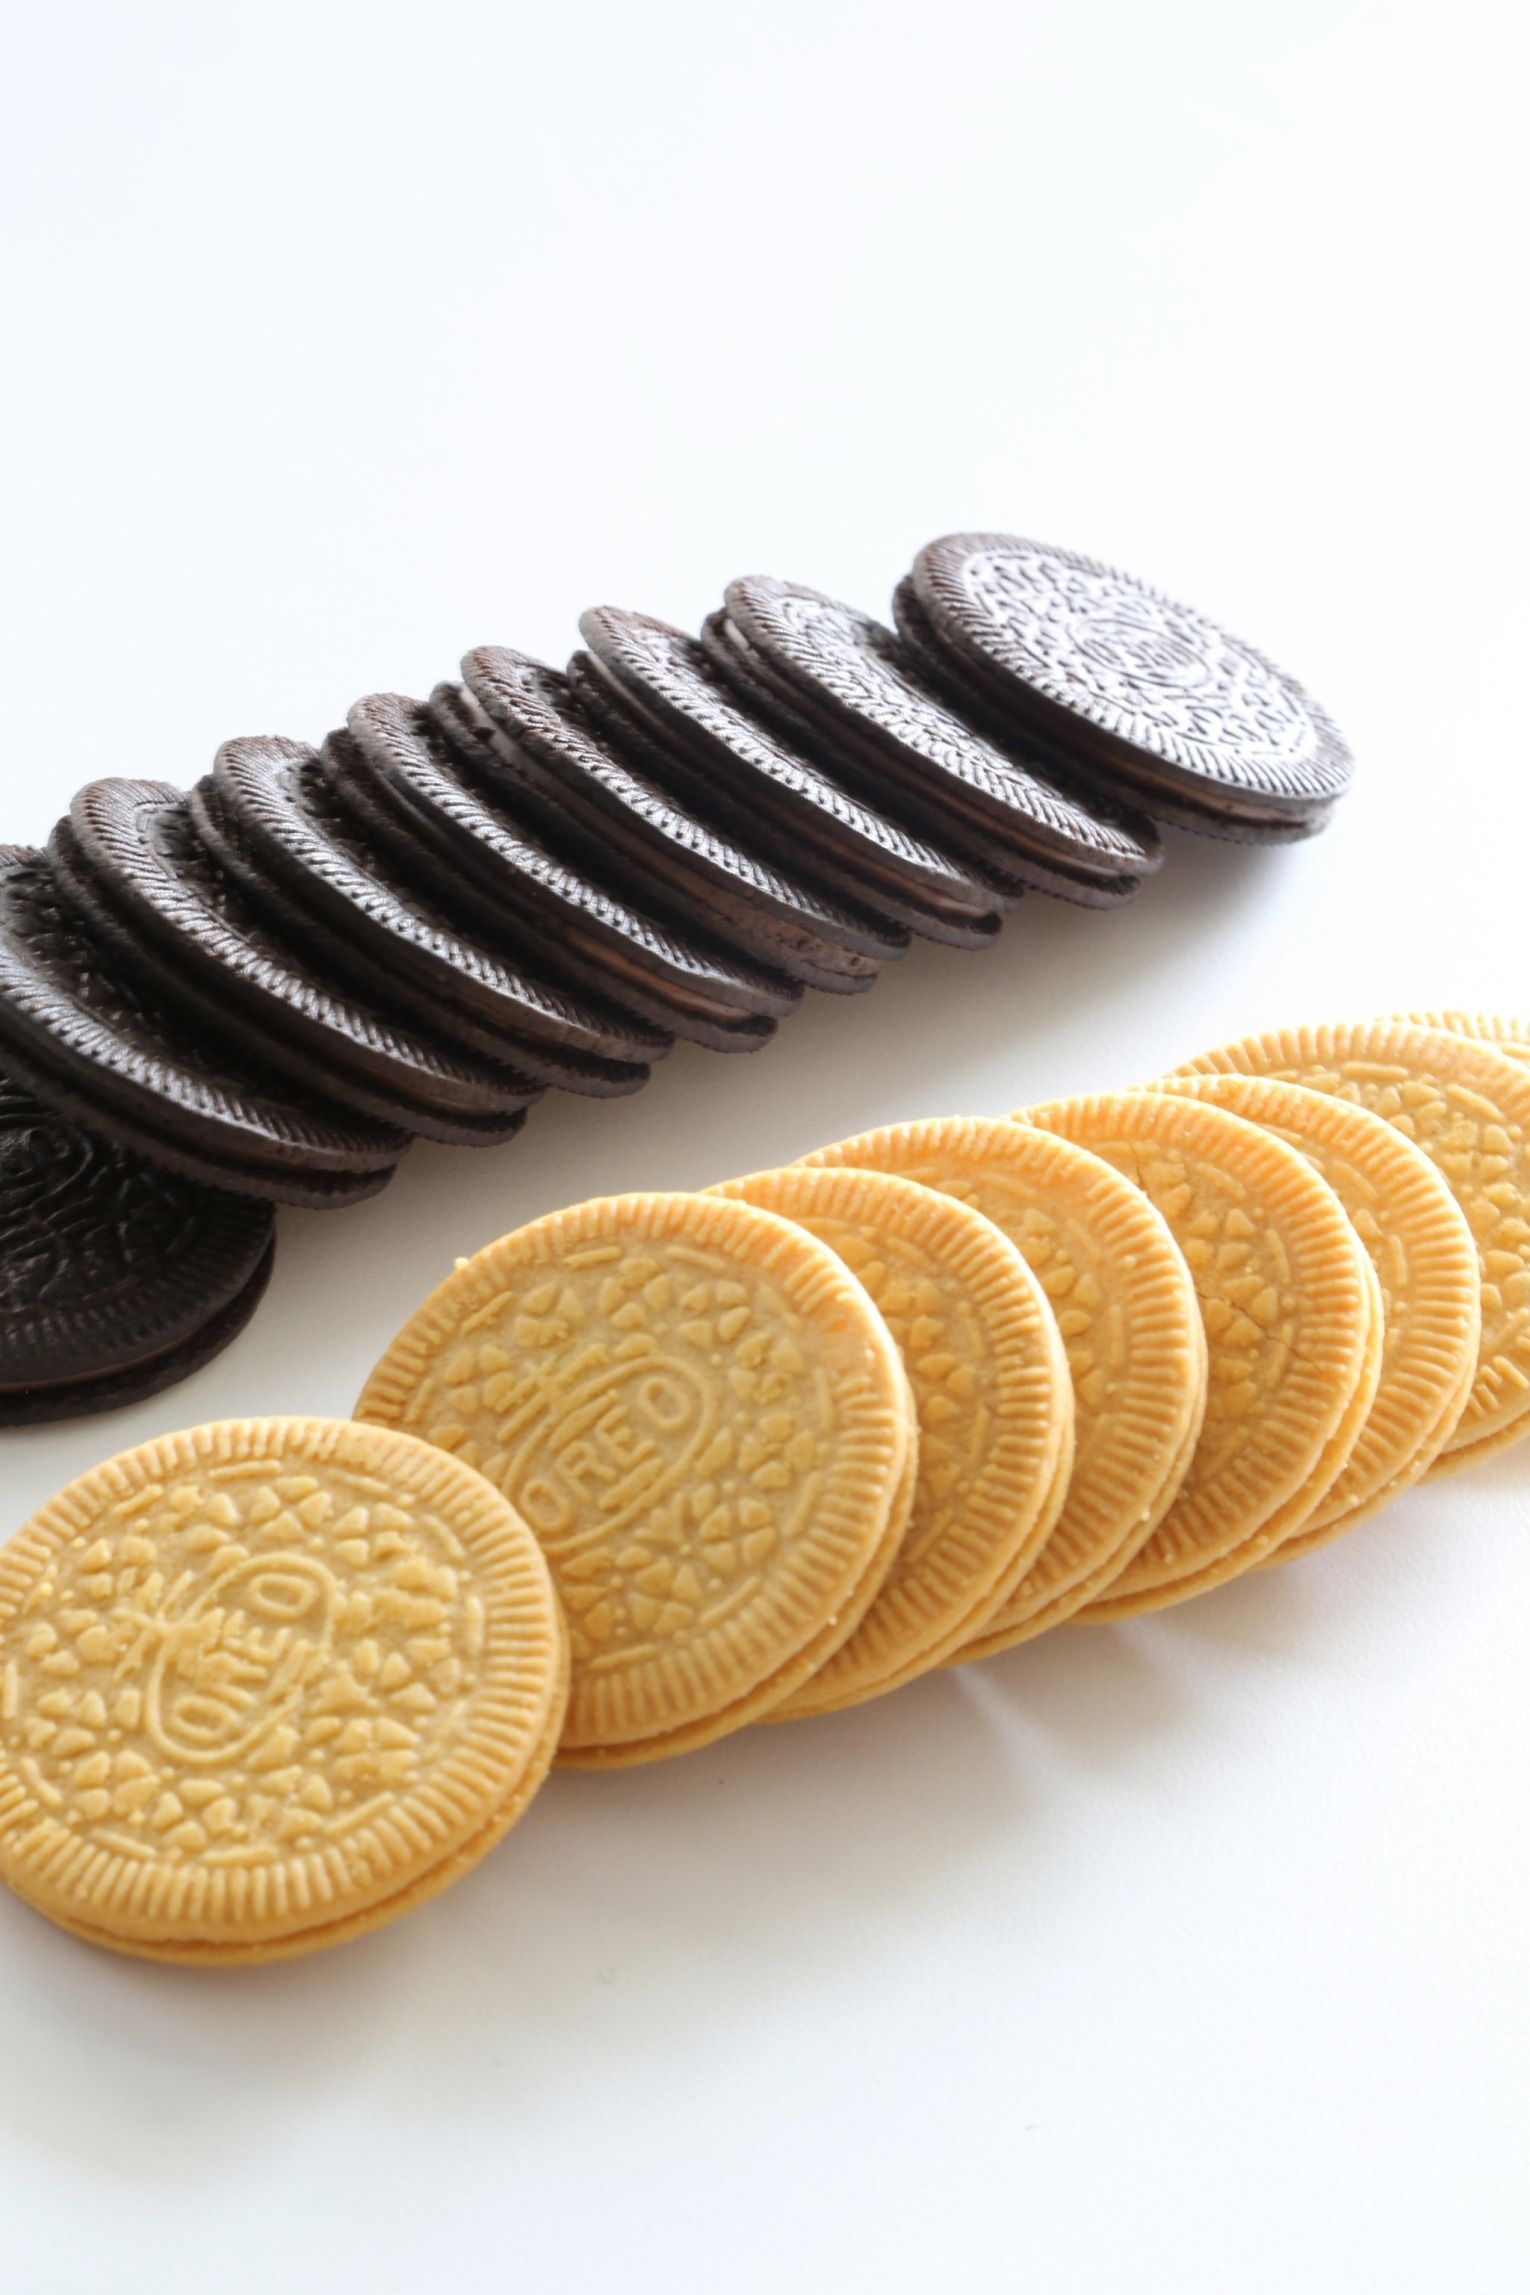 The latest from the Oreo flavor vault, Chocolate and Lemon Oreo Thins, didn't seem to exciting at first (especially since Oreo just released Fruity Crisp Oreos), but the taste test proved our preconceptions wrong.